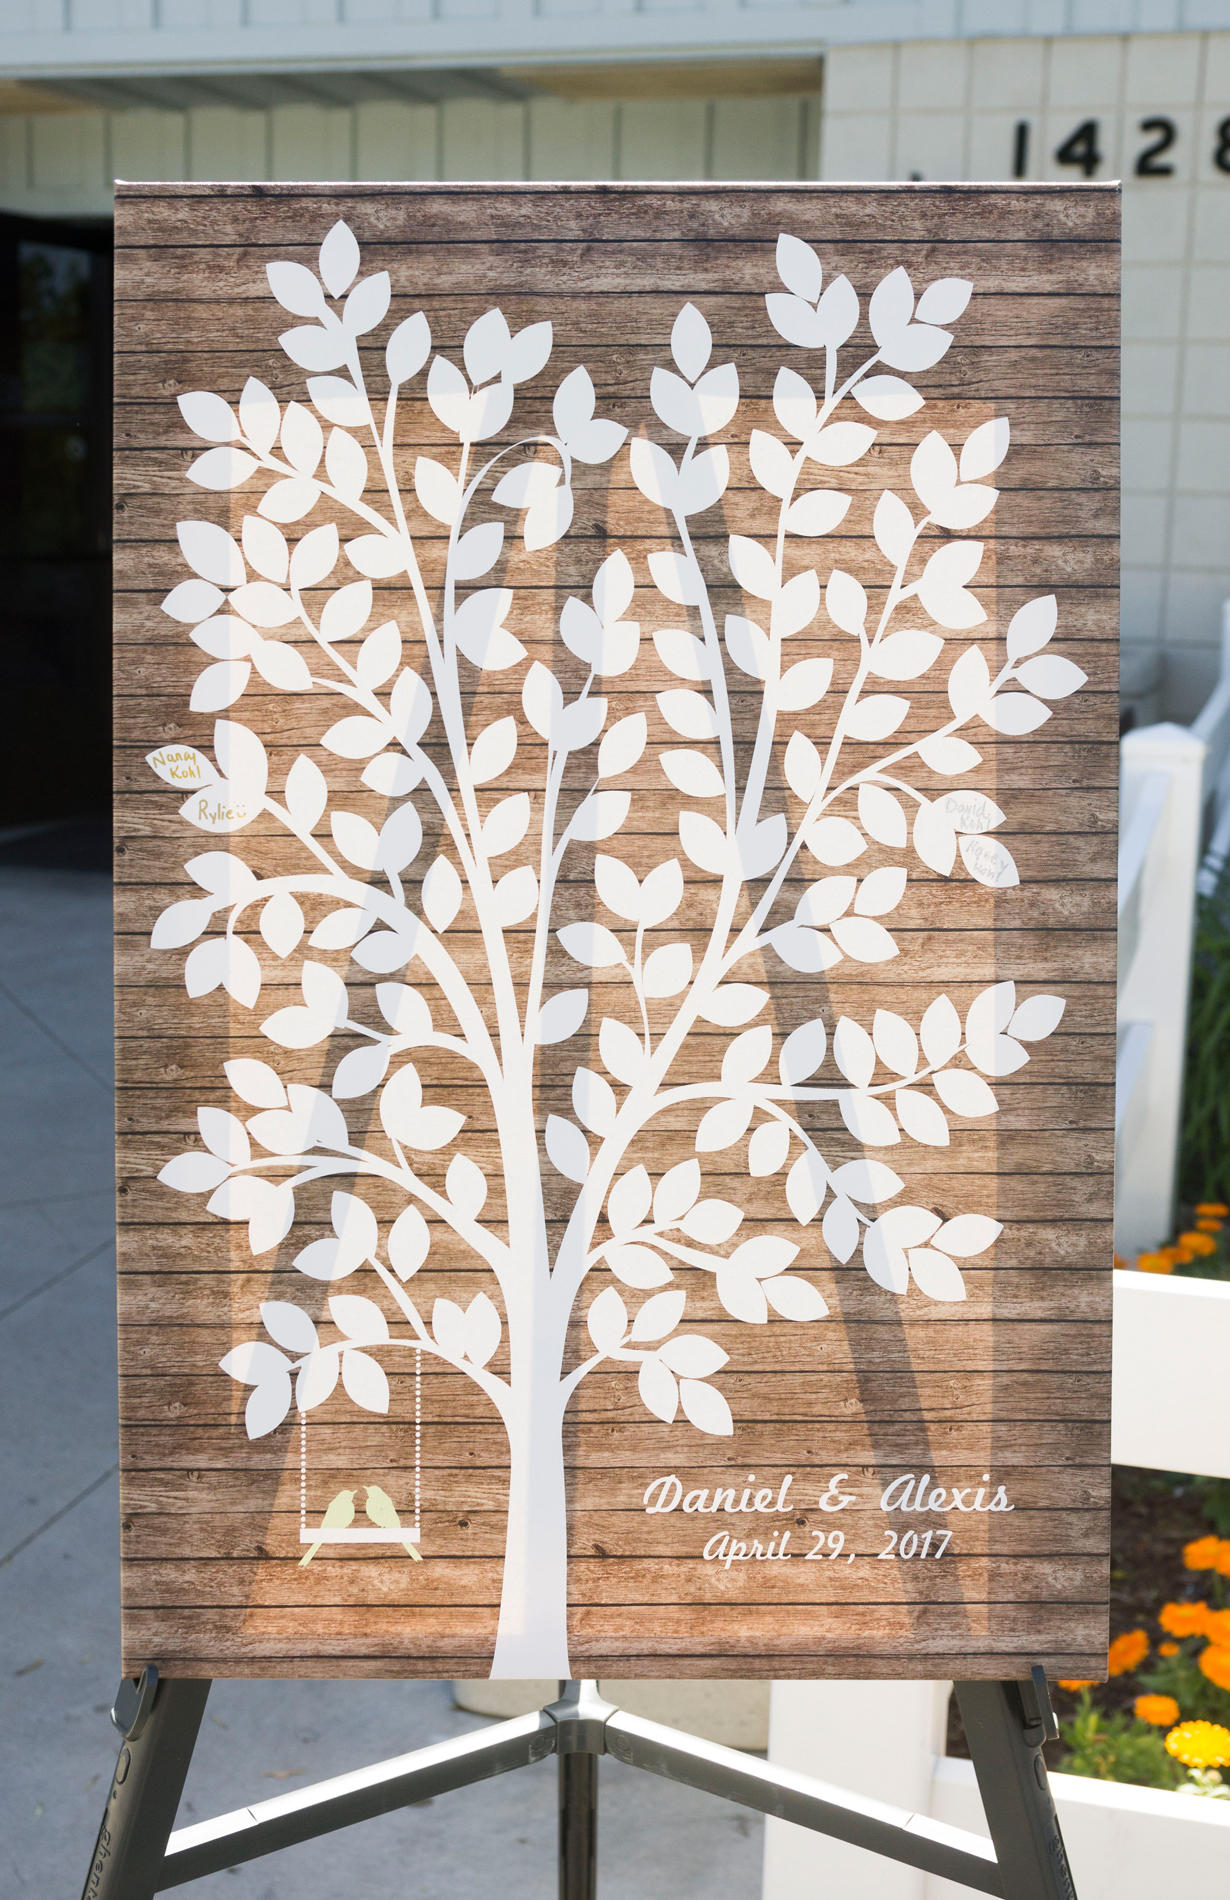 Wooden Guest Book Alternative - McCoy Equestrian Center Wedding - Peterson Design & Photography